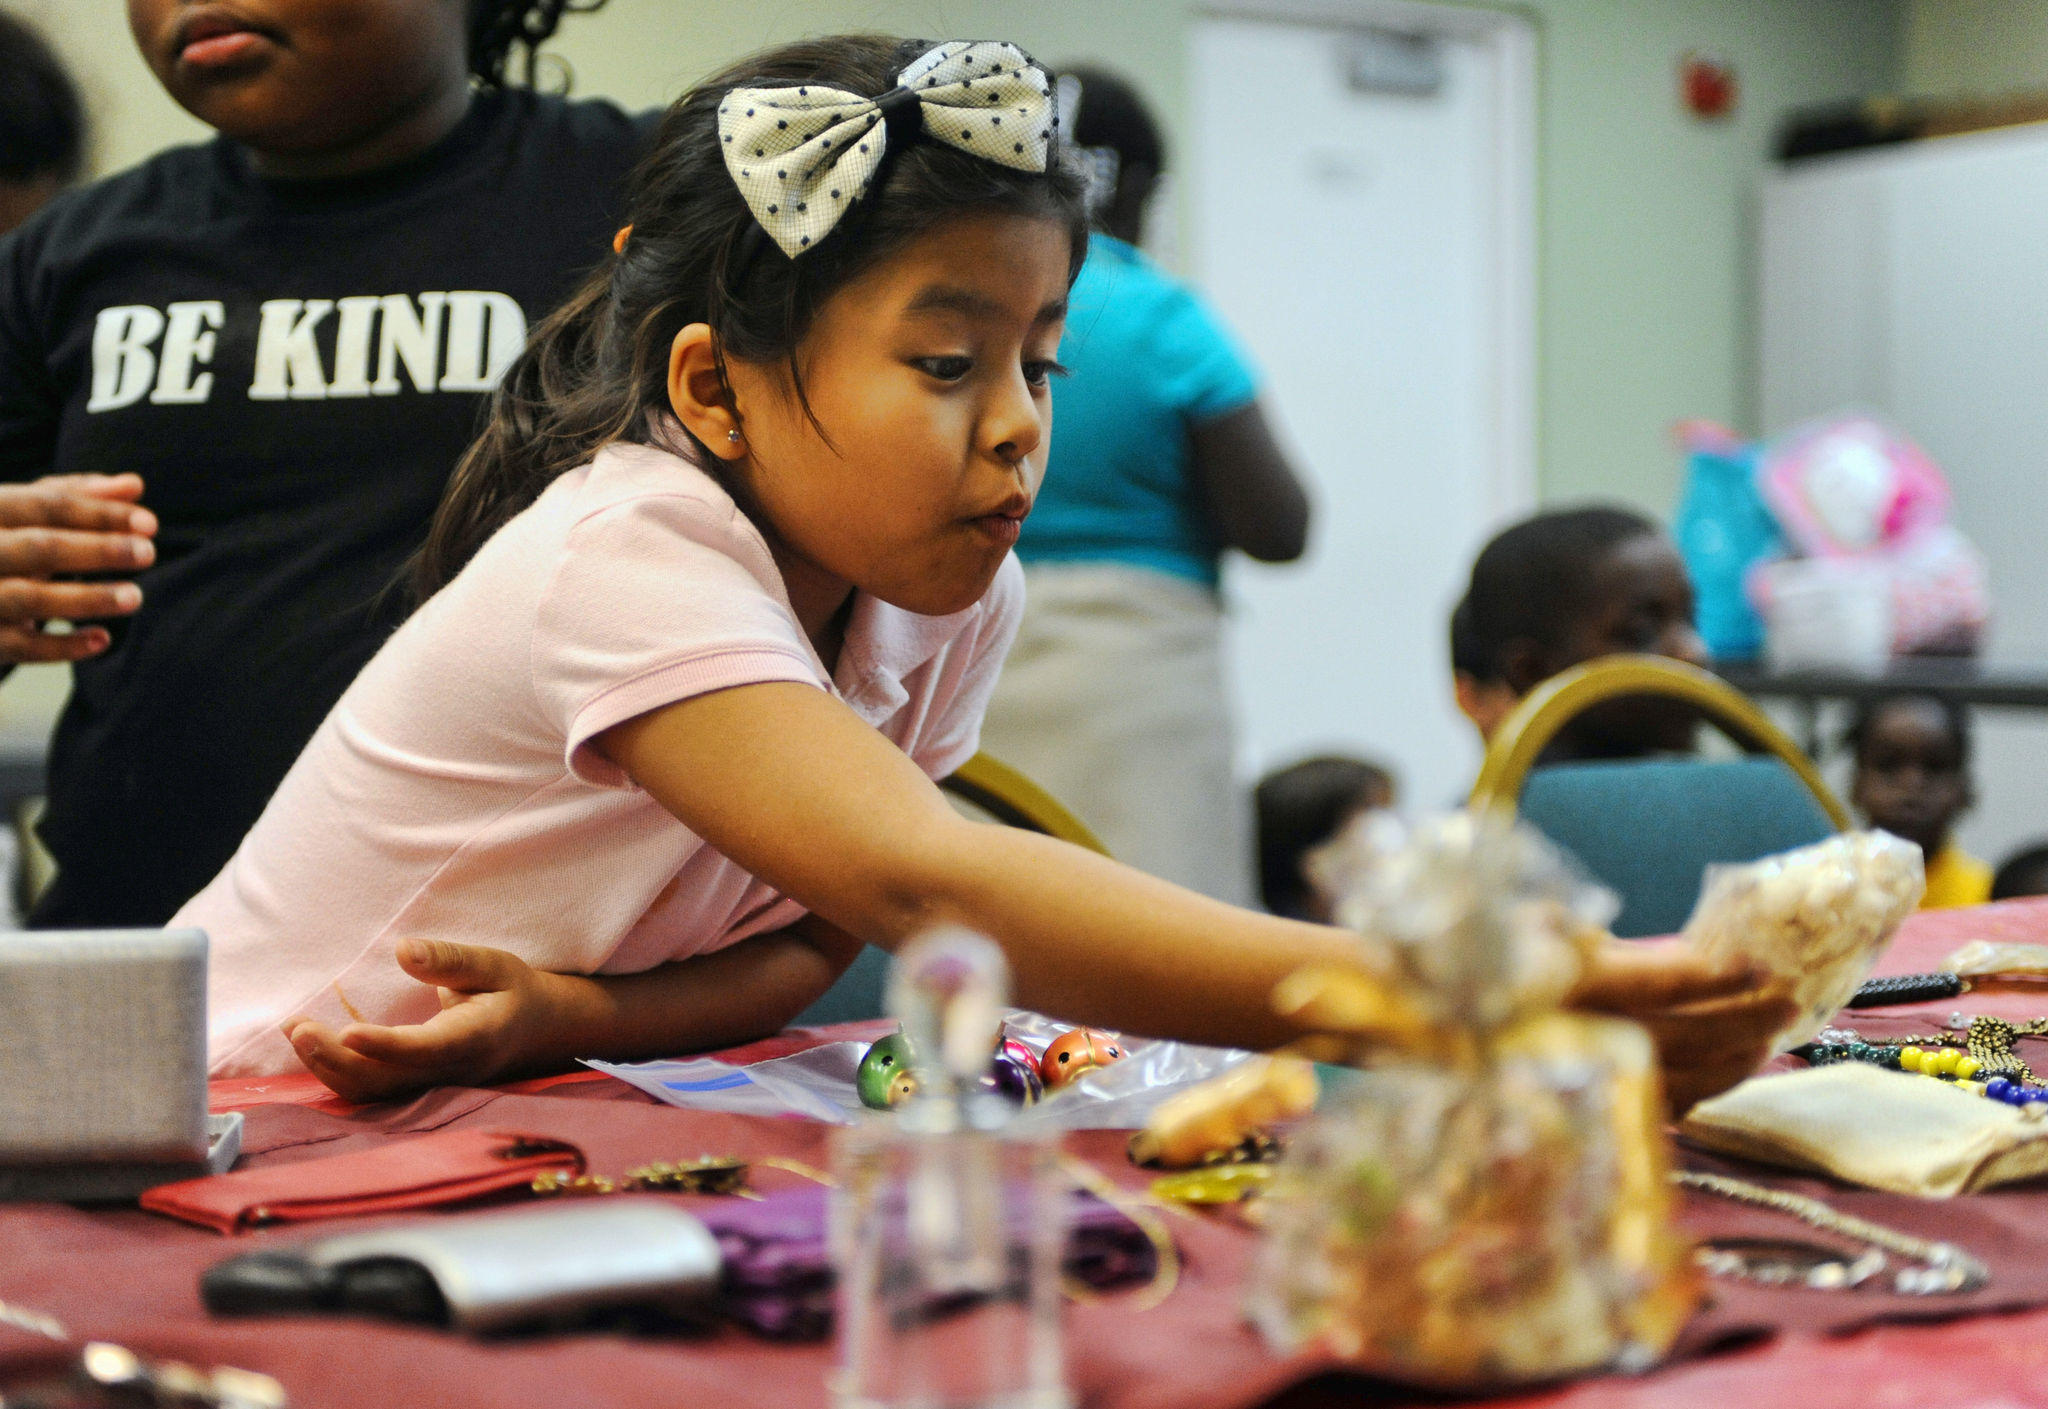 Alejandra Hernandez,7, takes part in a gift giving lesson at the Florence Fuller Development Center in Boca Raton. Students that participated were able to choose gift for their caretakers from a variety of donated jewelry and a variety accessories. The children then learned to wrap presents.12/19/12. Jim Rassol, Sun Sentinel.